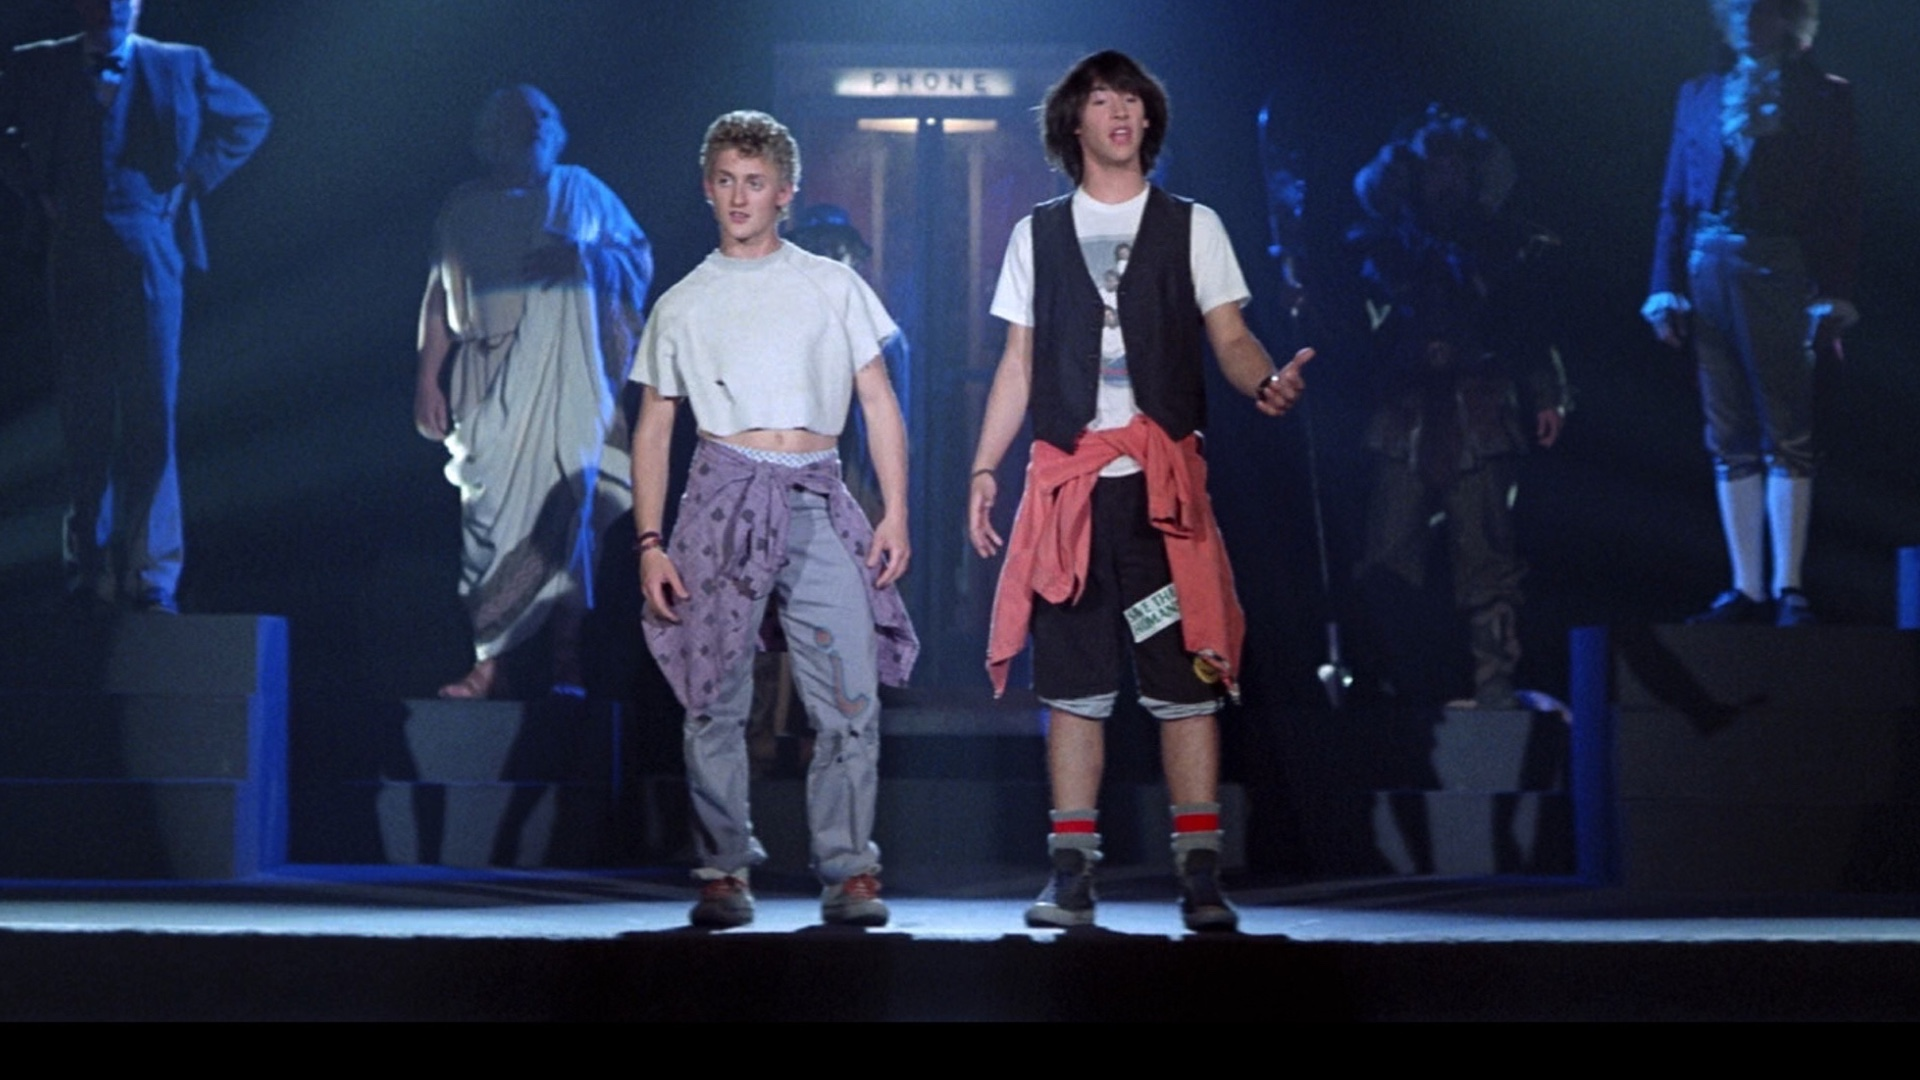 Set Photo From BILL & TED FACE THE MUSIC Feature Keanu Reeves and Alex Winter